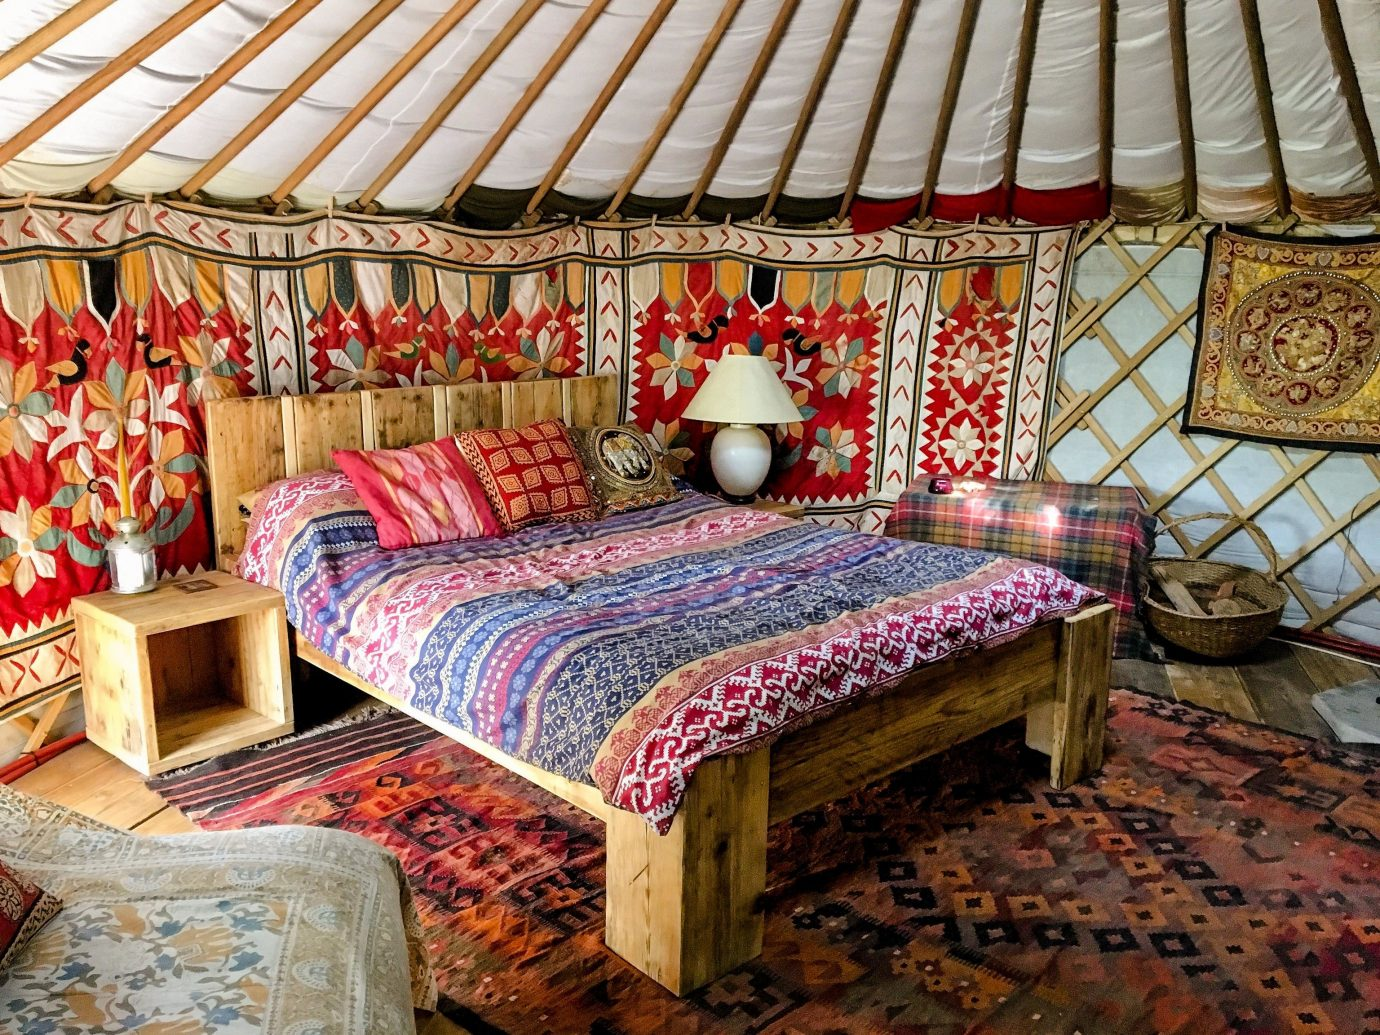 Glamping Outdoors + Adventure Trip Ideas indoor room textile bed interior design bed sheet furniture bed frame Bedroom bedding linens colorful